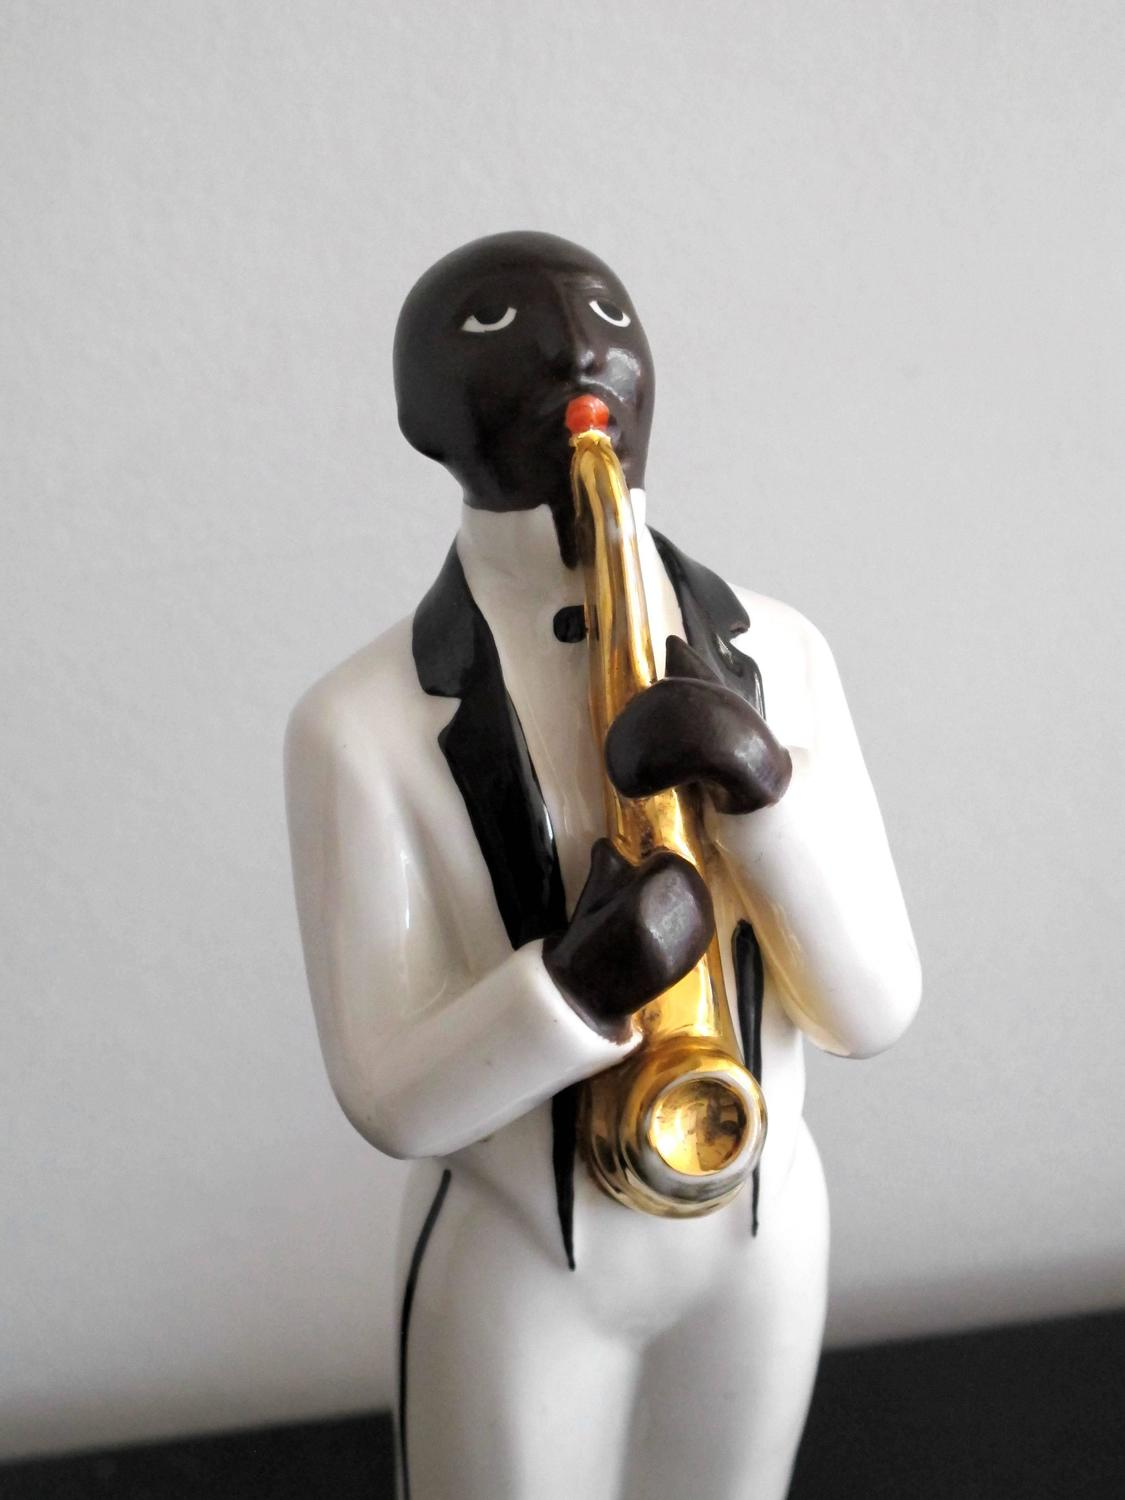 robj art deco jazz band in porcelain for sale at 1stdibs. Black Bedroom Furniture Sets. Home Design Ideas